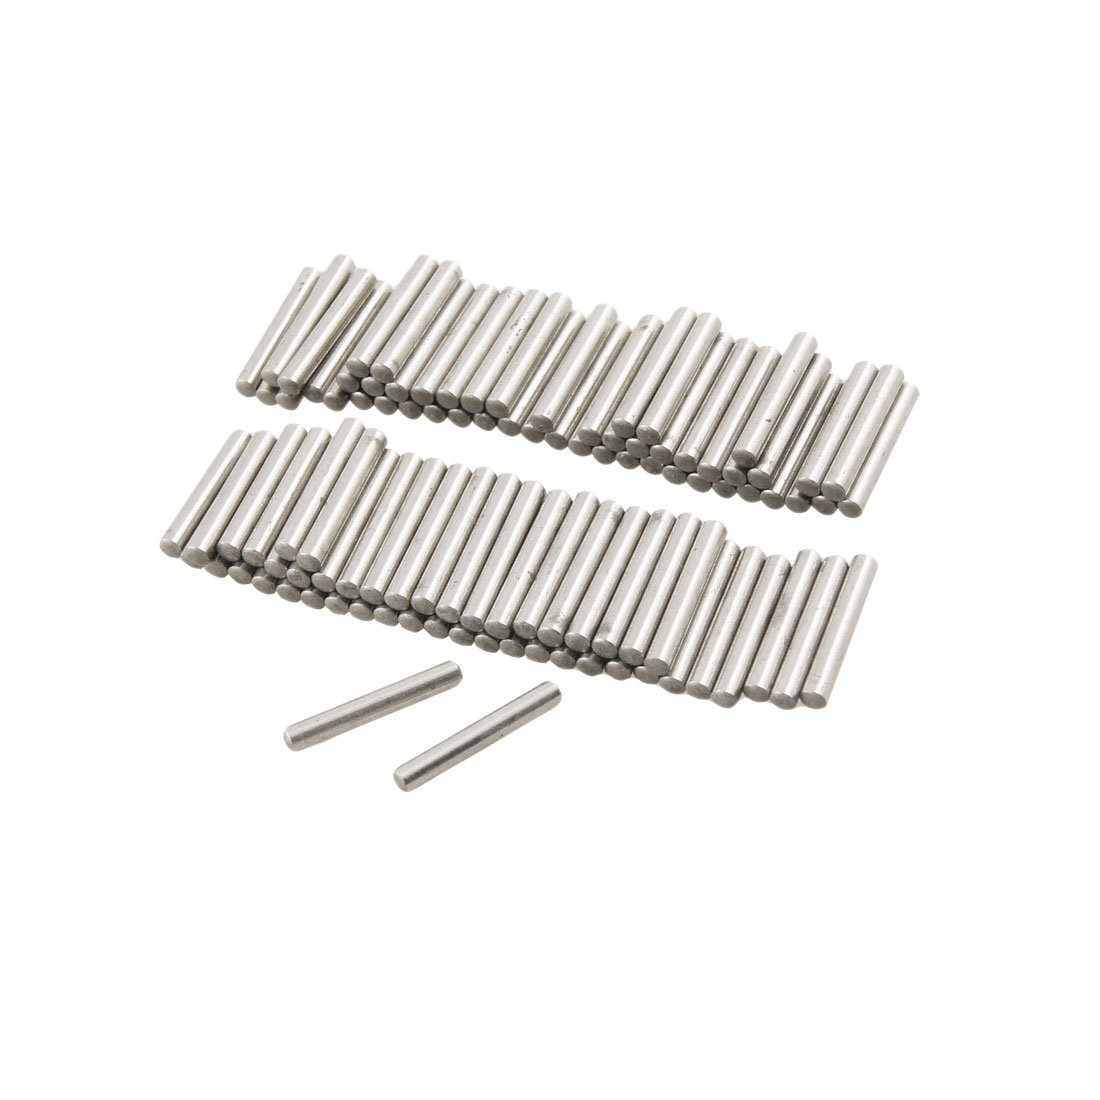 100 Pcs Stainless Steel 2.1mm x 15.8mm Dowel Pins Fasten Elements Sourcingmap a12042300ux0543